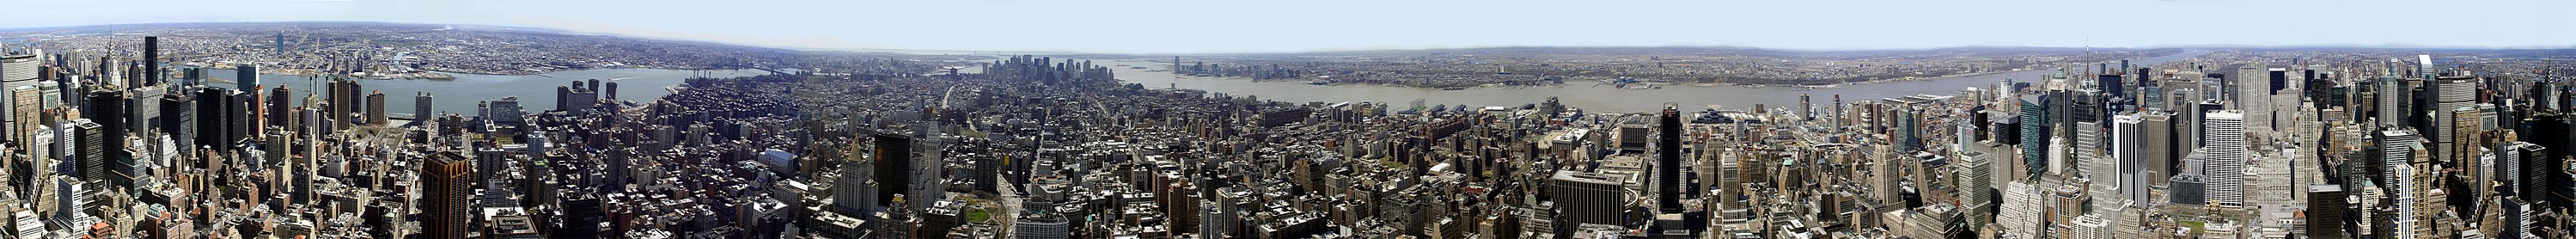 360° panorama of New York City from Empire State Building in spring 2005